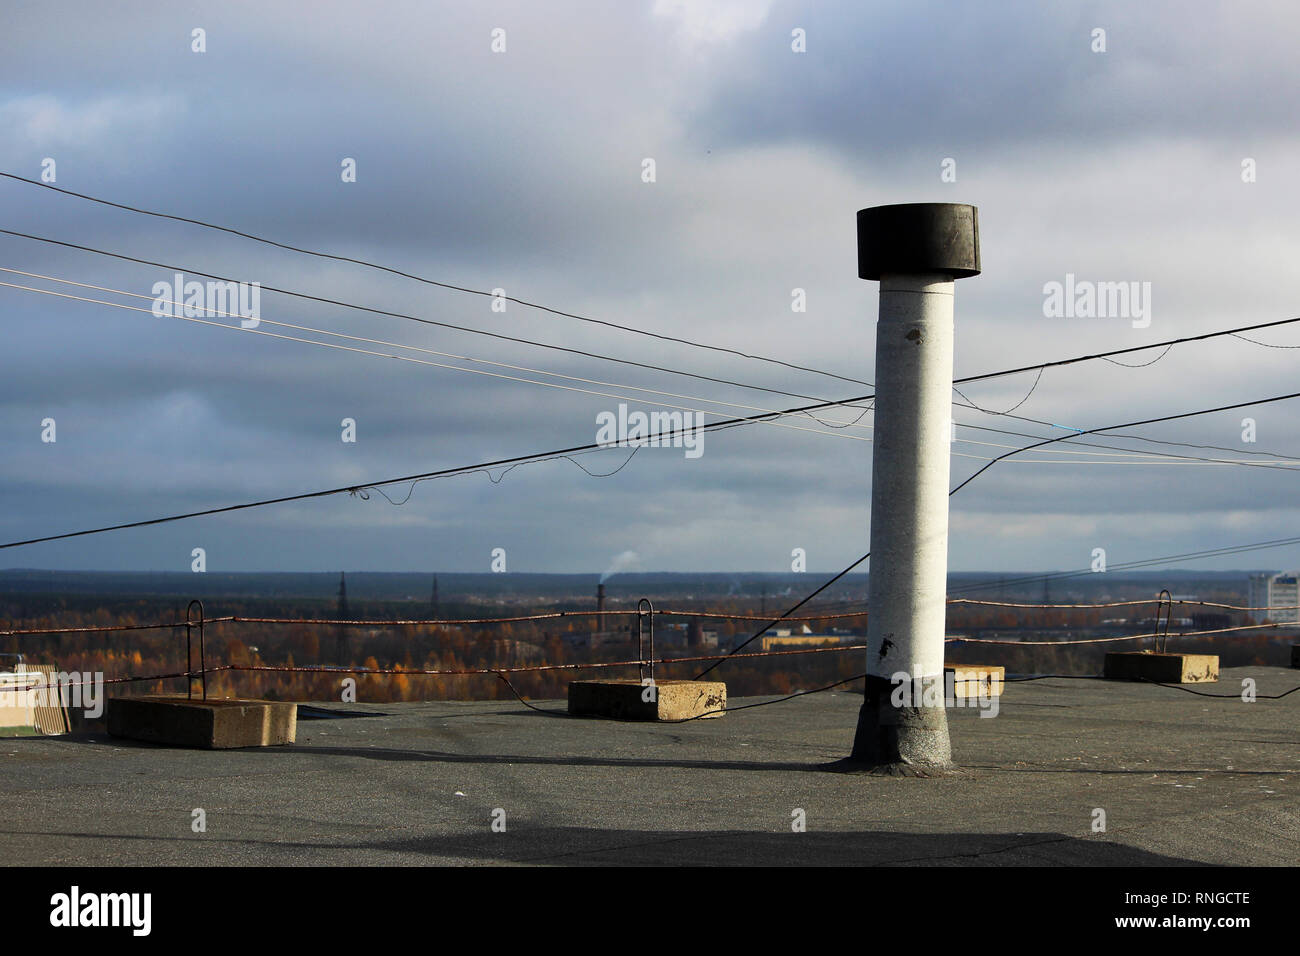 view from the flat roof of a multistory building covered with ruberoid, railing. ventilation tube. view of the city of Arkhangelsk - Stock Image